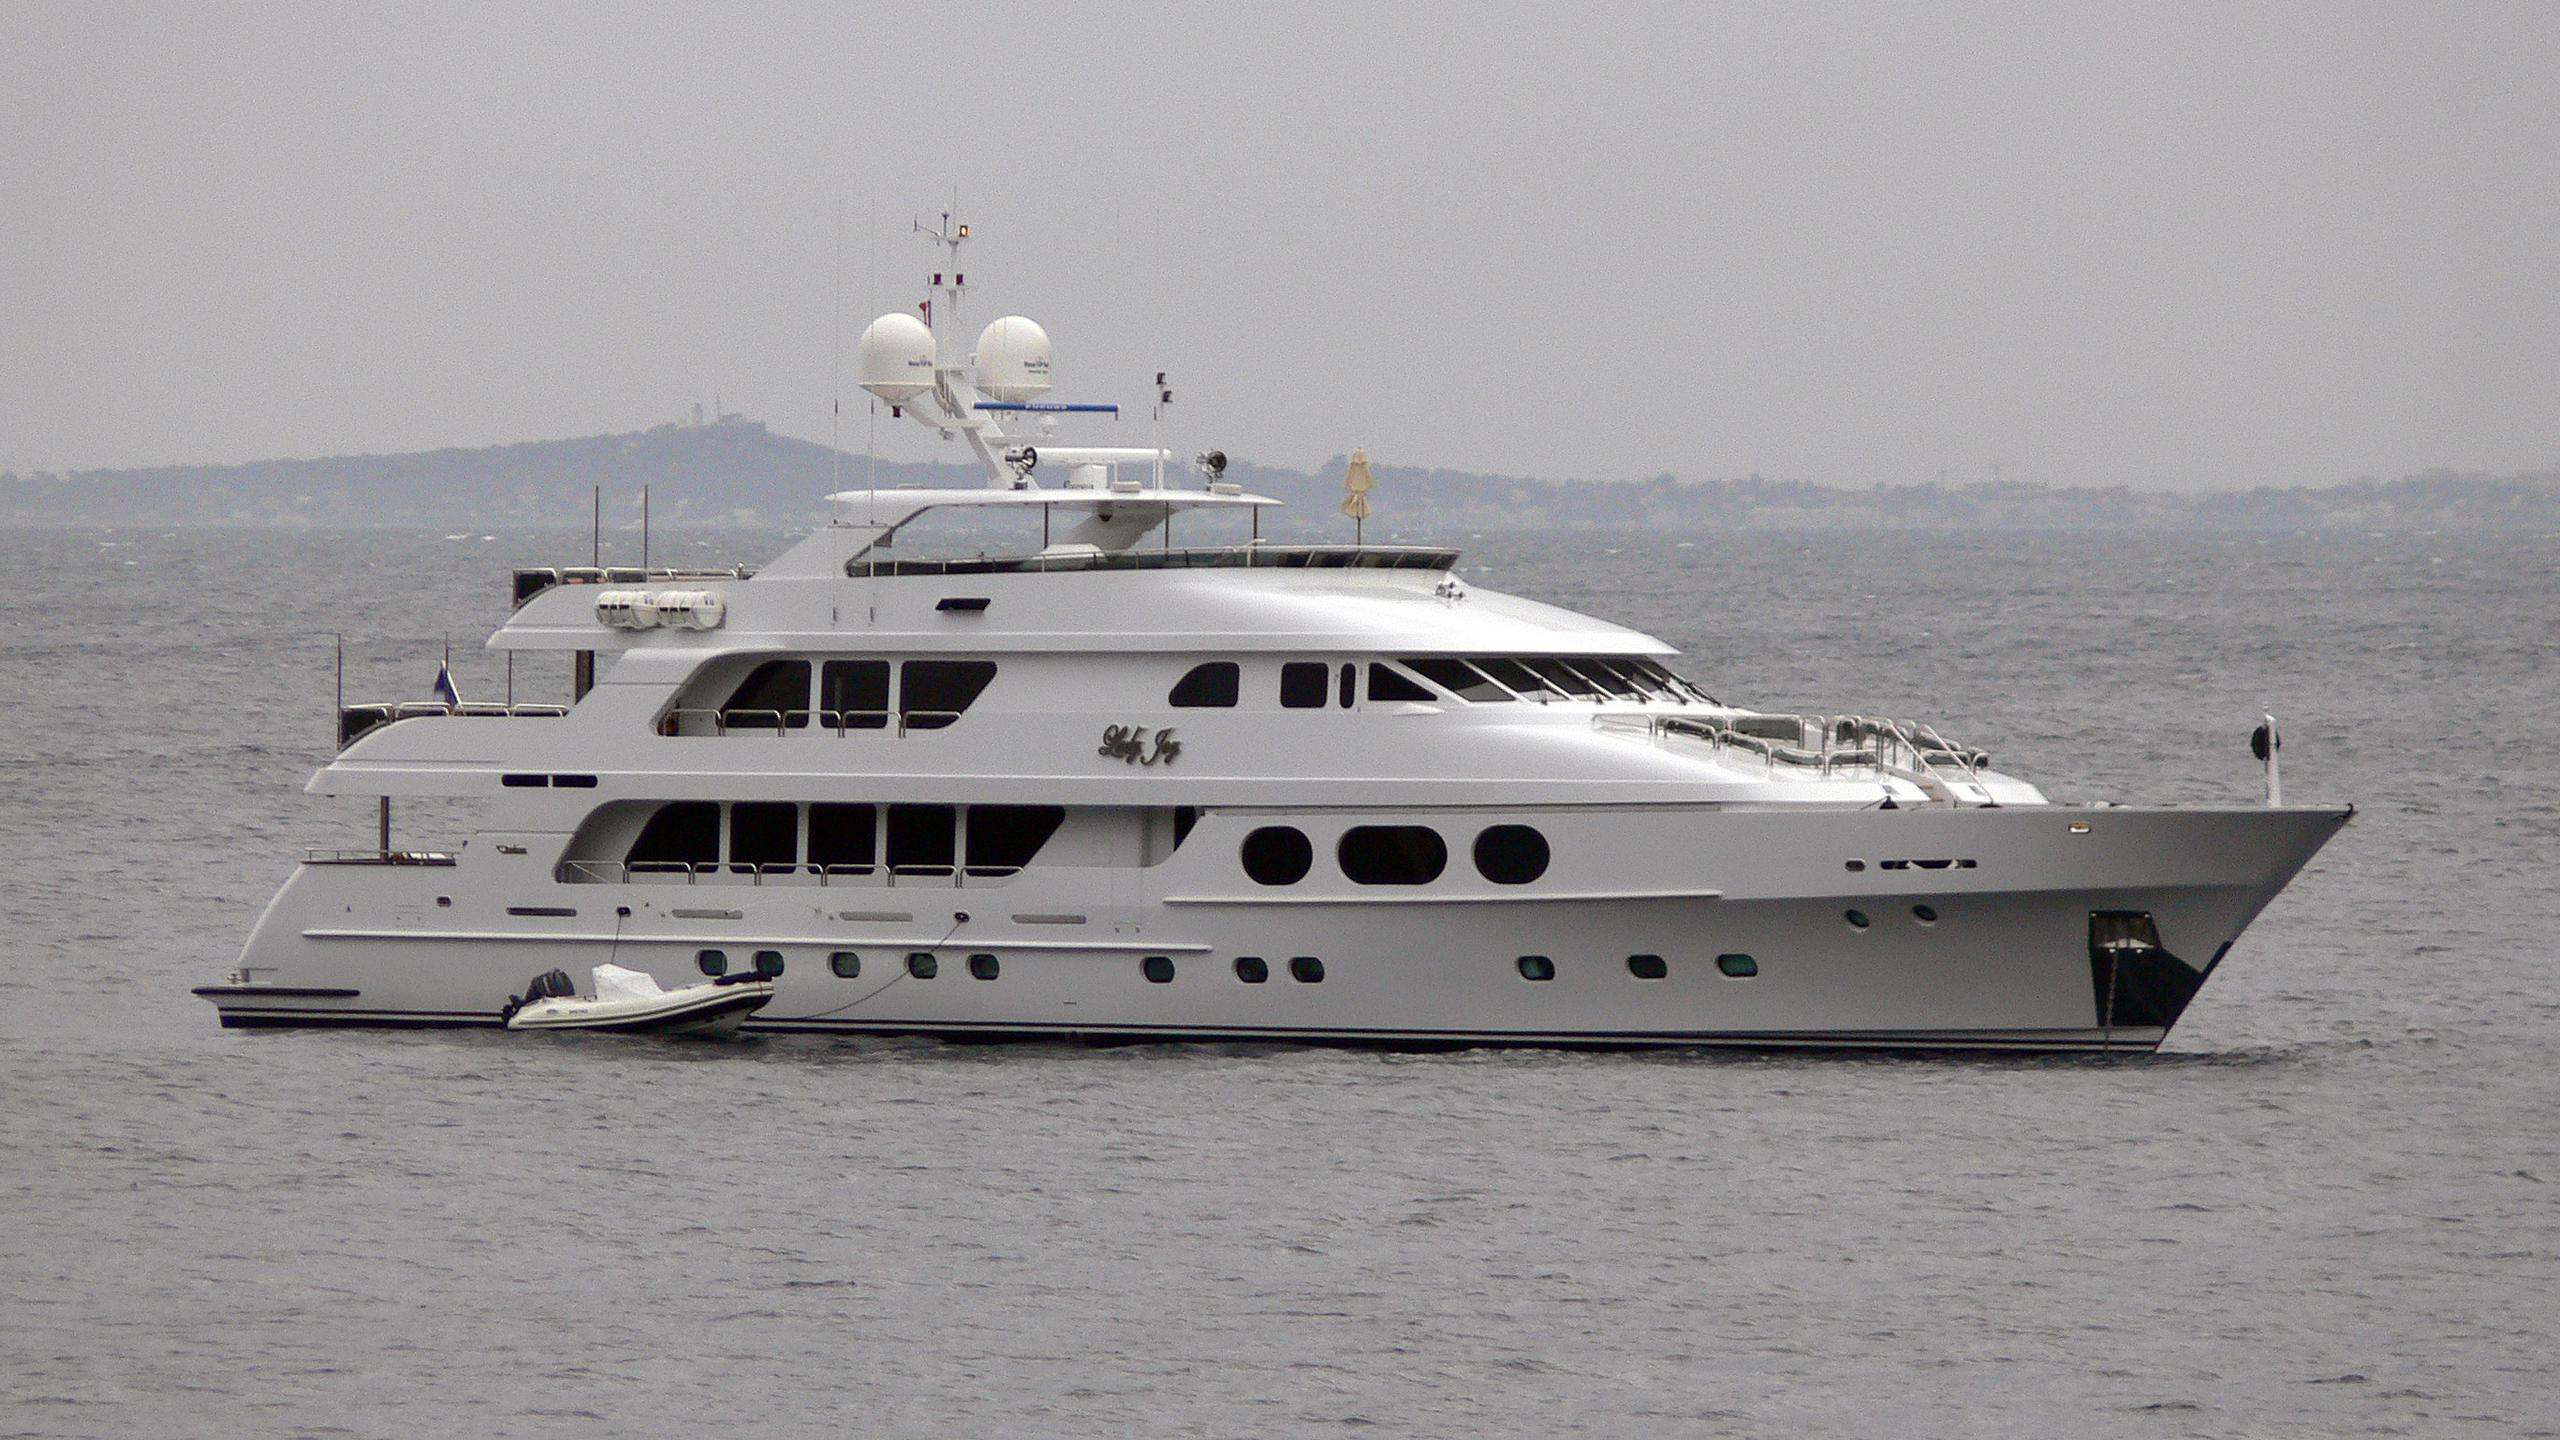 lady-joy-motor-yacht-christensen-157-2007-48m-profile